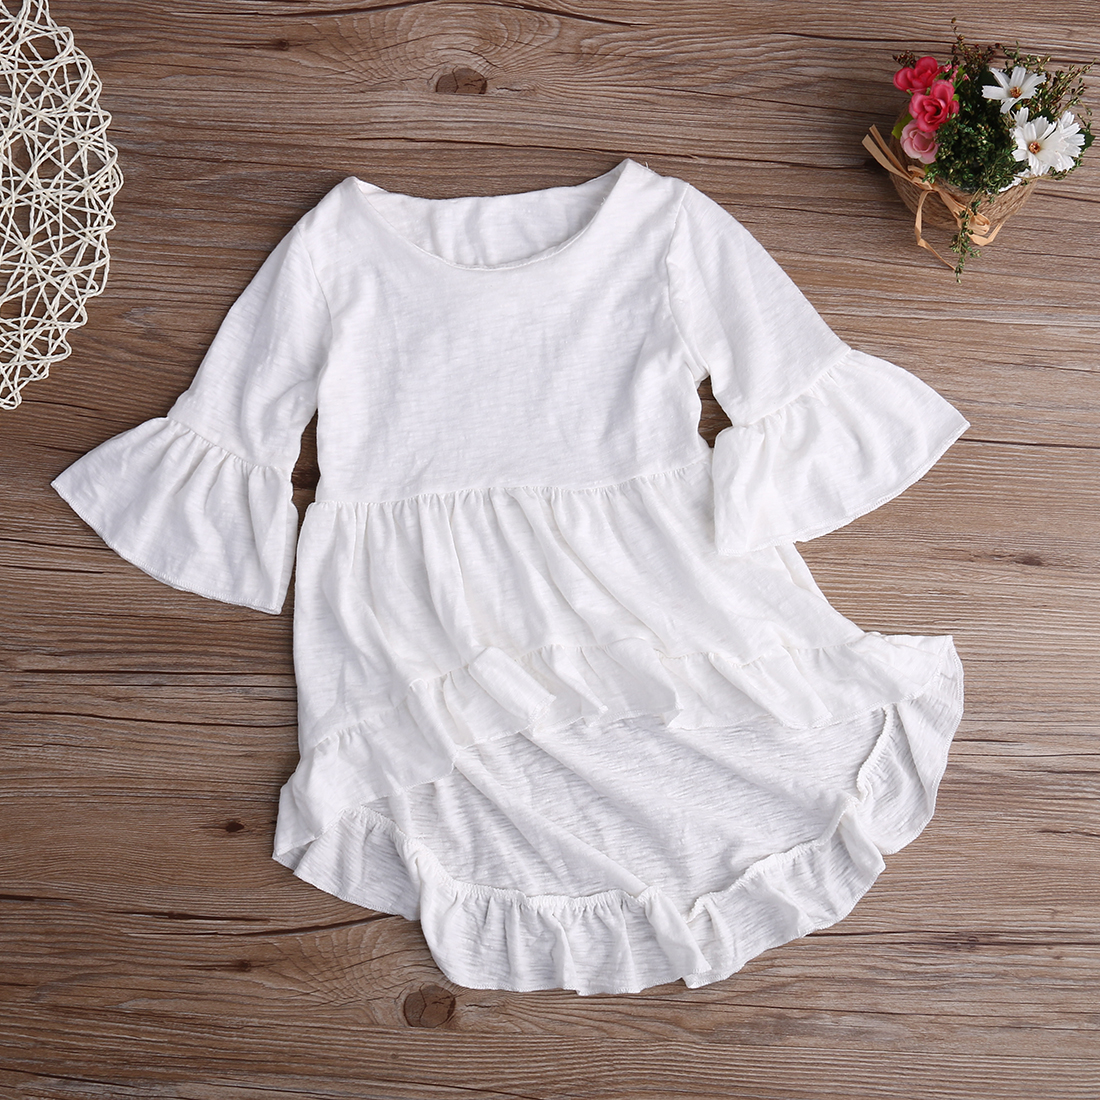 White Baby Girls Dress Frills Flare Sleeve Top T-Shirt Party Ruffles Hem Dresses 1-6Y стиральная машина indesit btw d51052 rf кл a верт макс 5кг белый